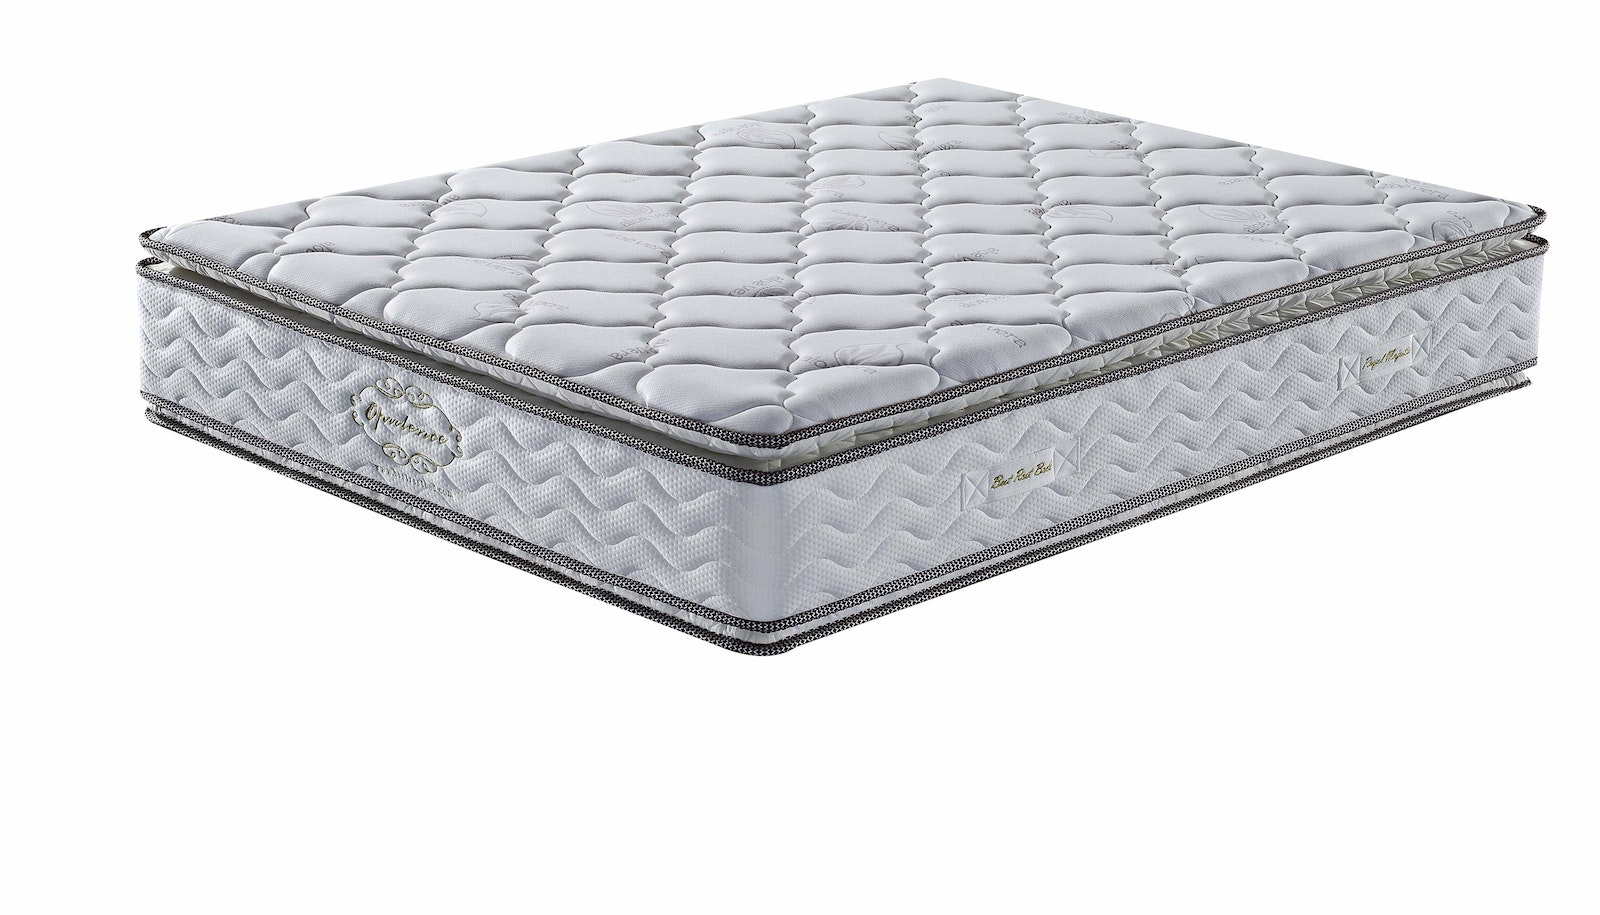 Queen mattress for sale townsville queen size mattress sale unique pics of queen size mattress Bed and mattress deals